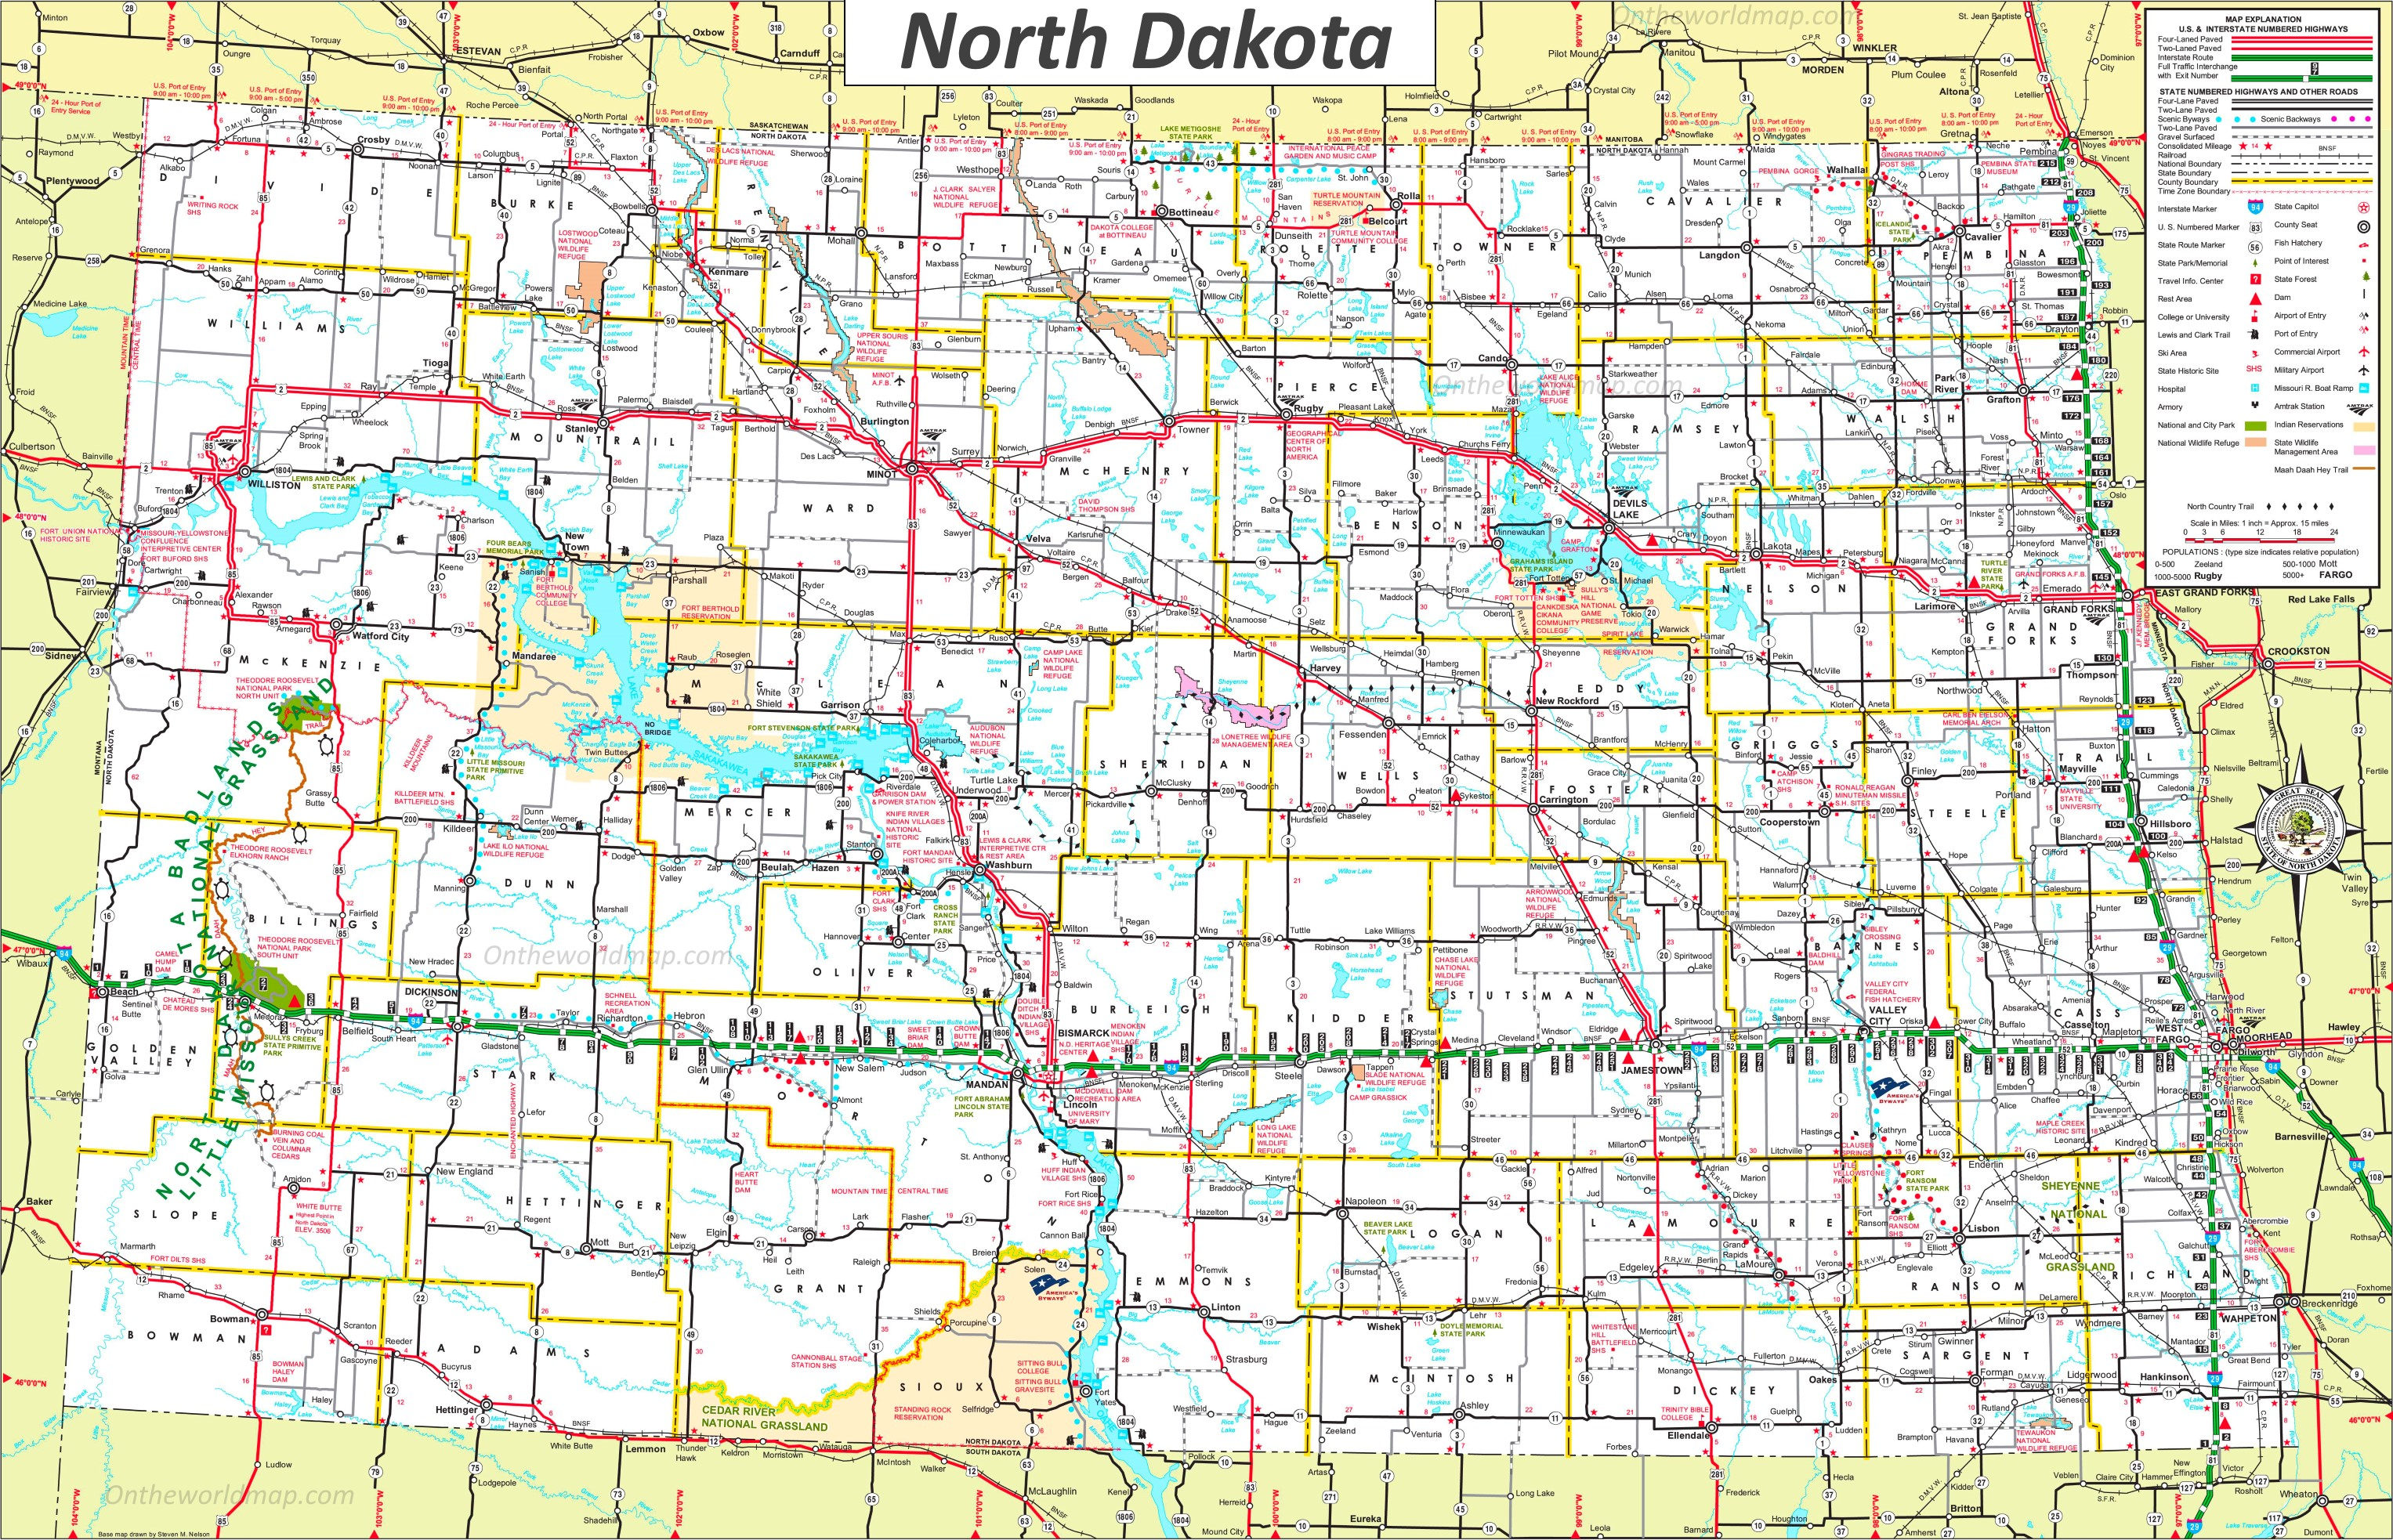 Map Of Nd Large detailed tourist map of North Dakota with cities and towns Map Of Nd